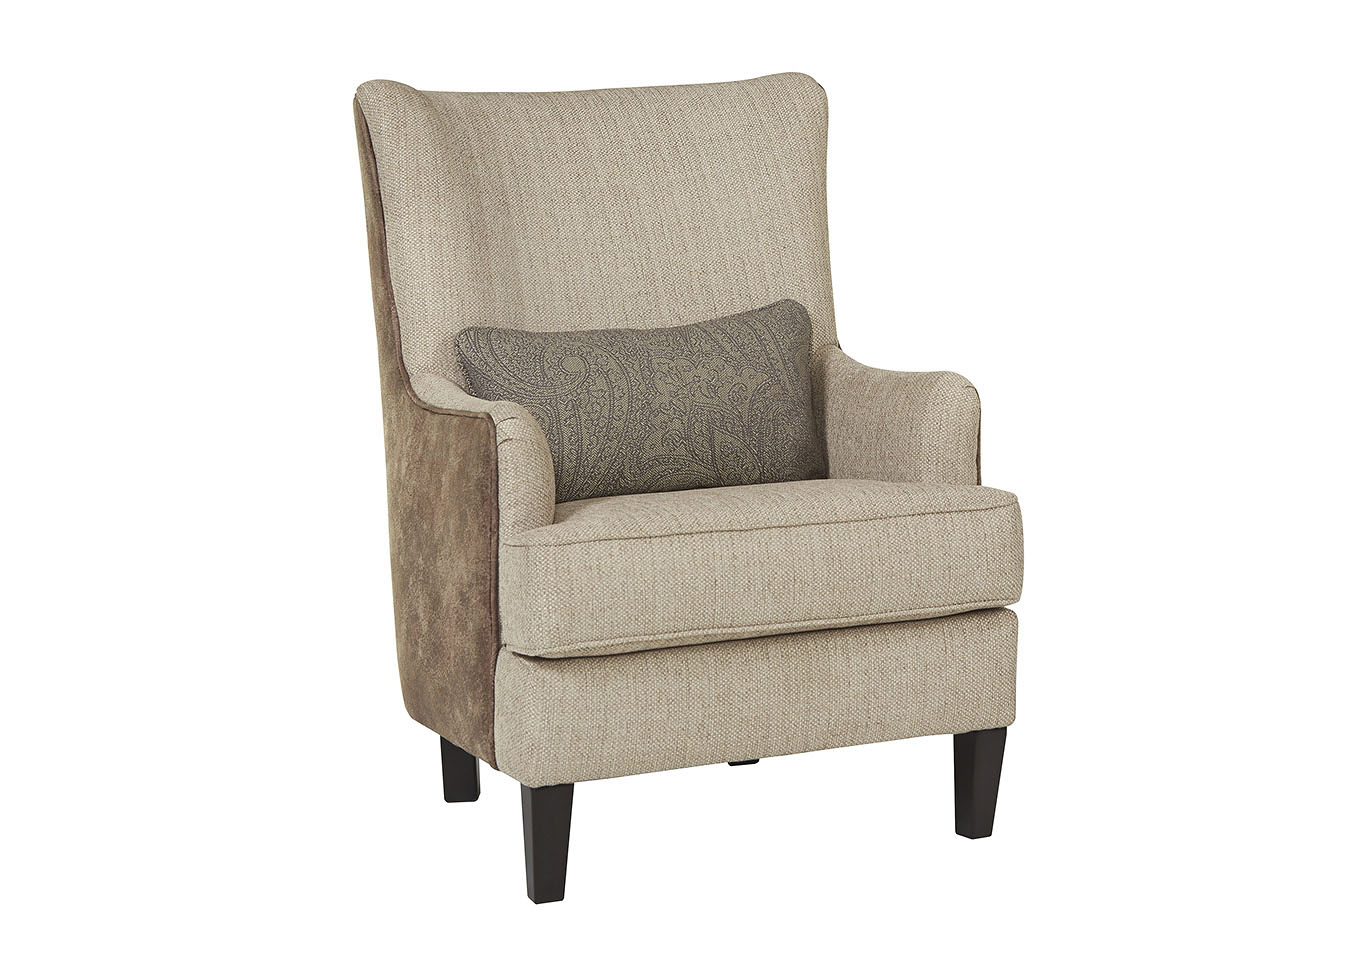 Baxley Jute Accent Chair,Millennium